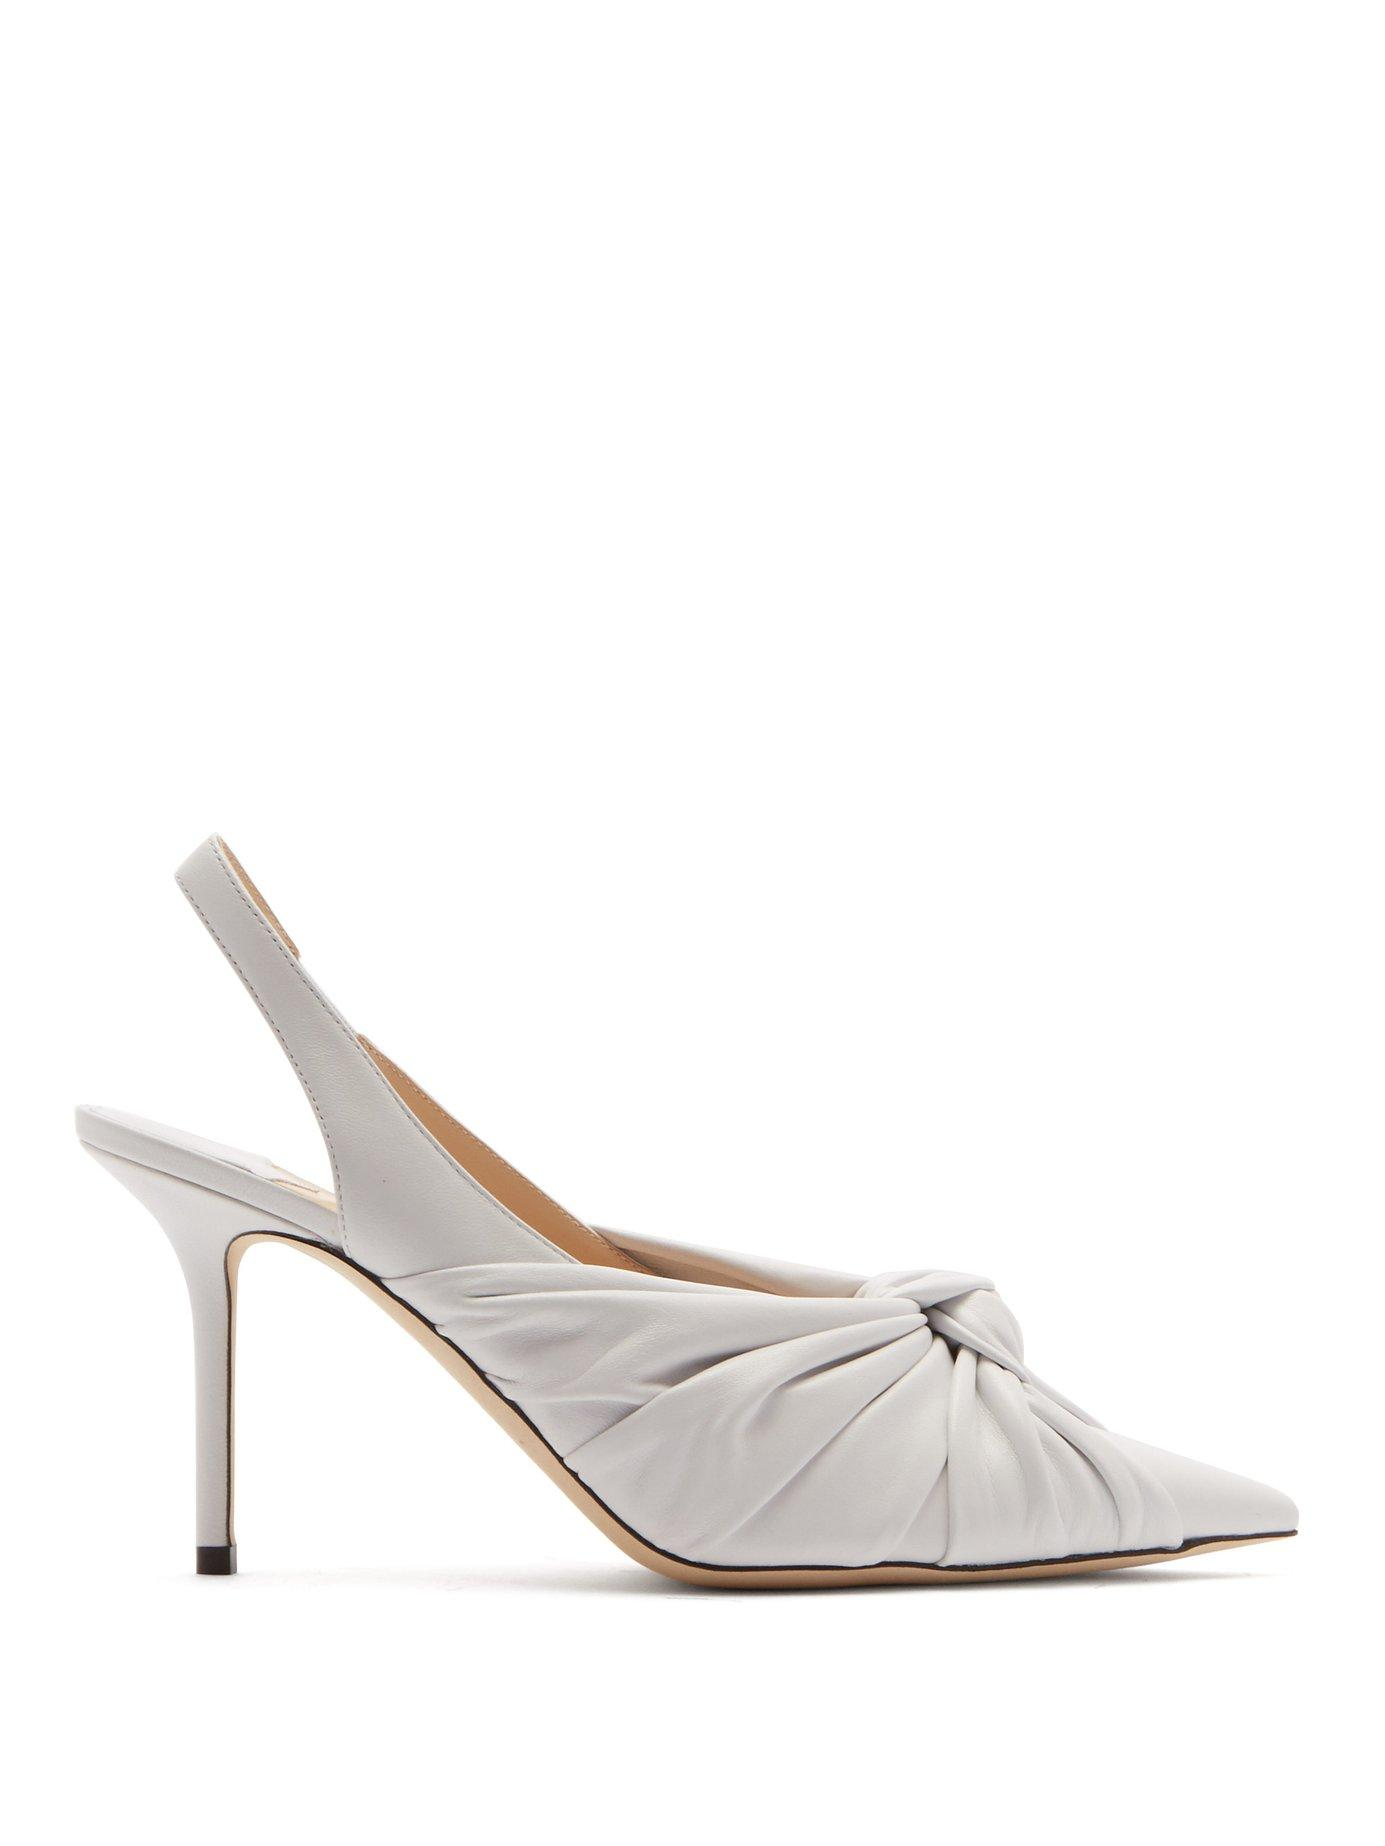 75f26dbe3e5 Lyst - Jimmy Choo Annabelle 85 Leather Slingback Pumps in White